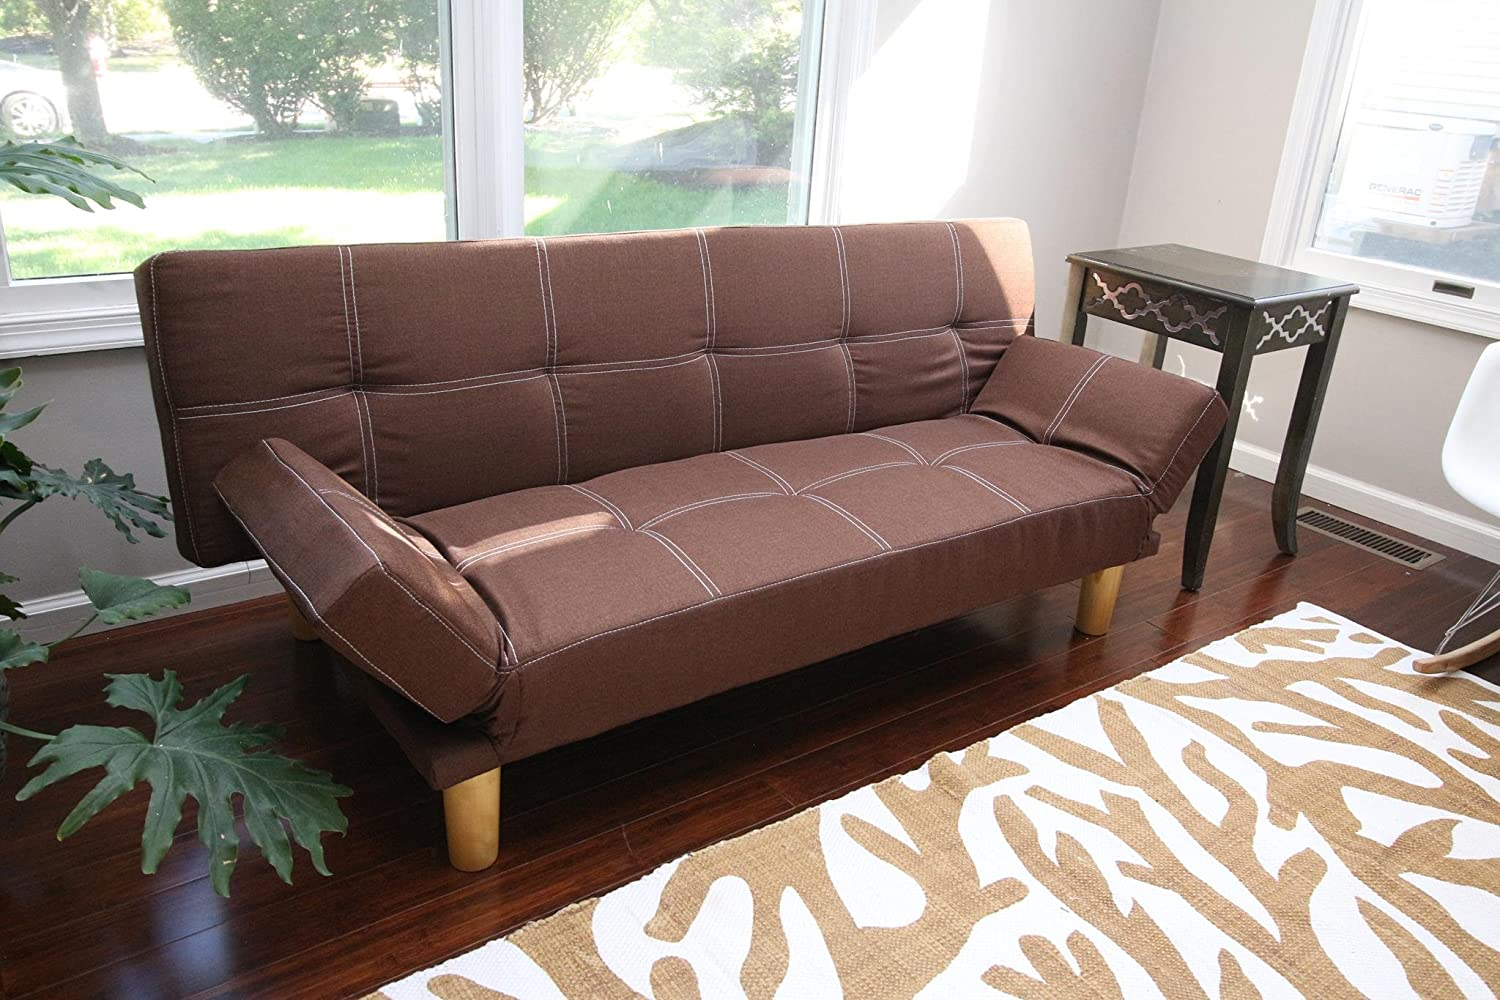 Delaney Futon Sofa Bed Brown